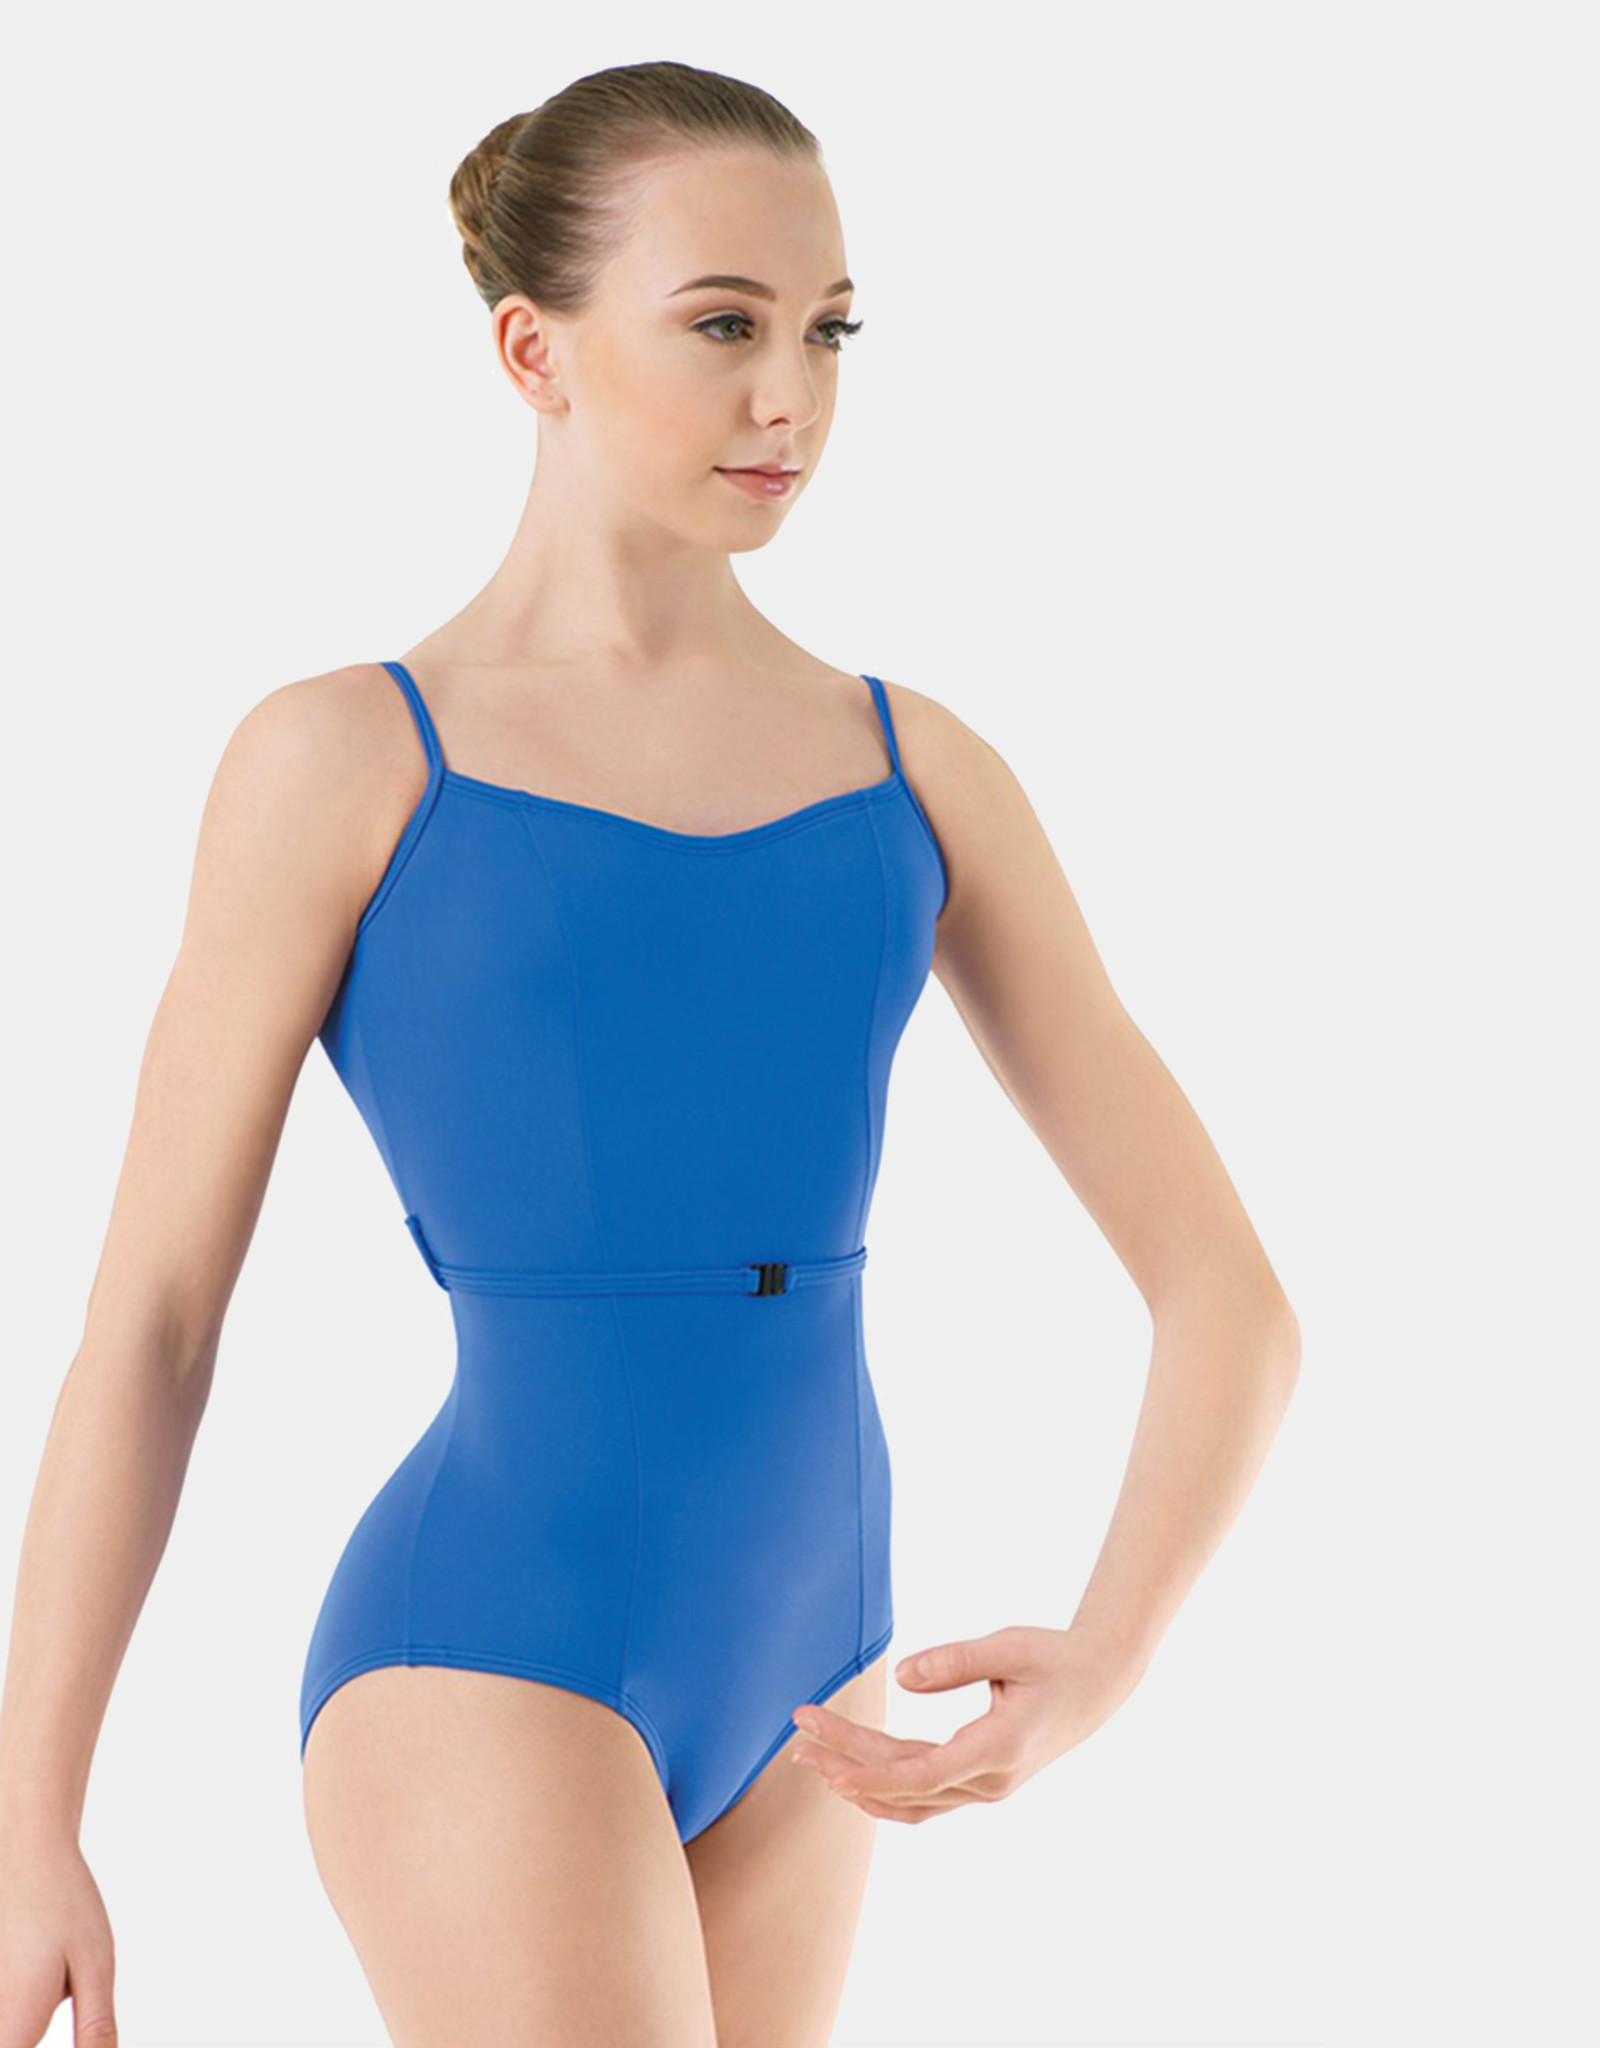 BODY WRAPPERS BELTED LEOTARD (P1212)